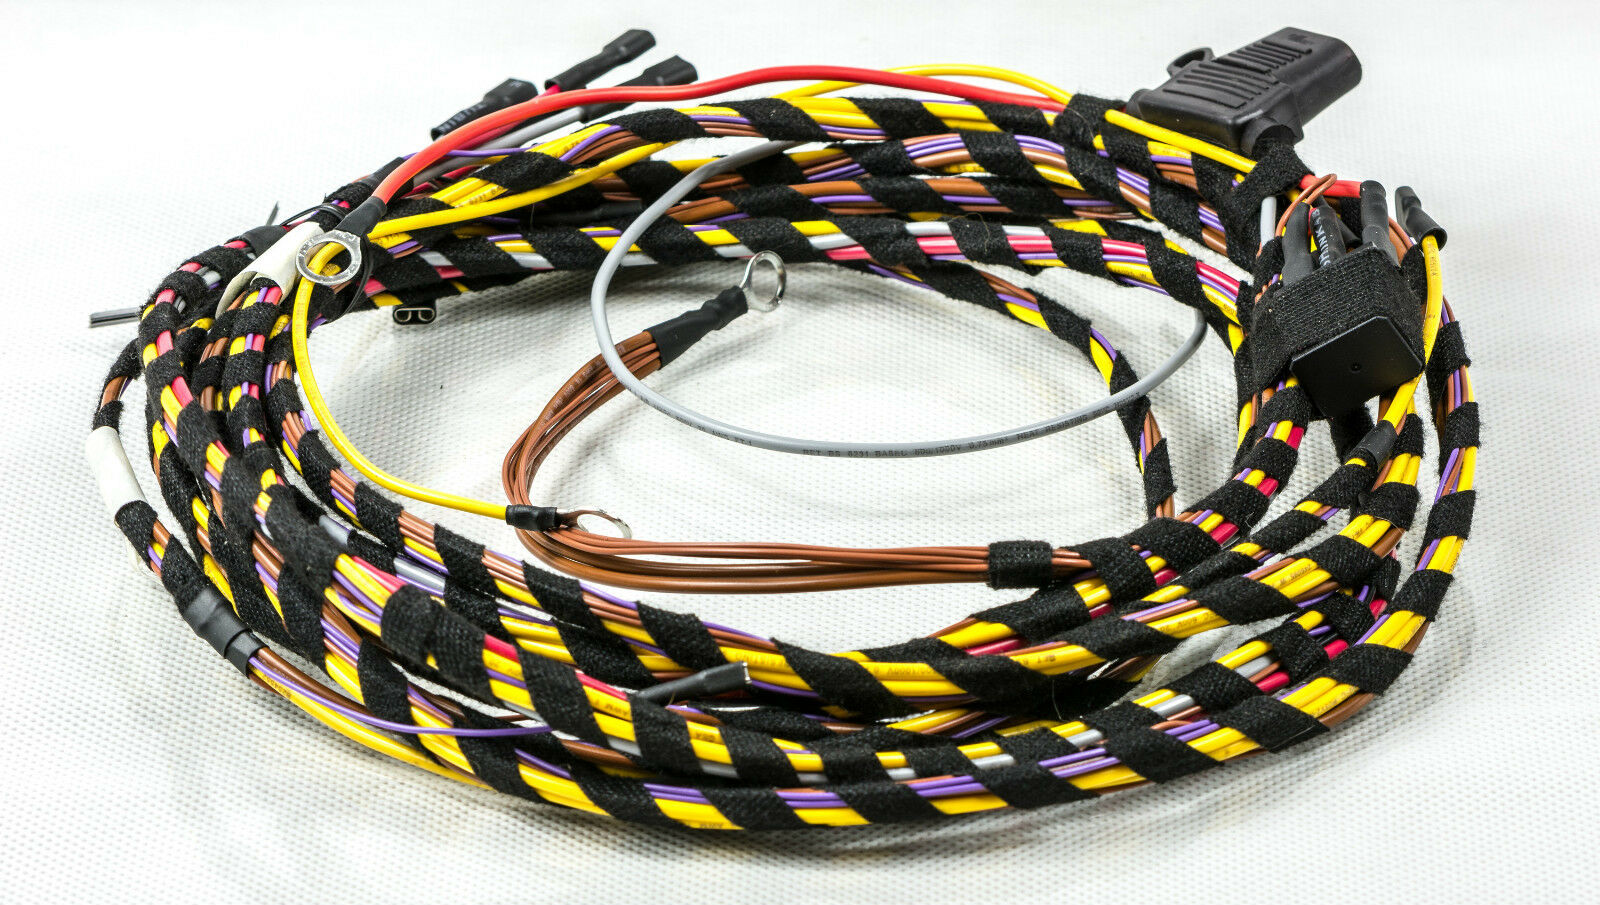 Vw Golf Mk4 Leon Bora Heated Seat Loom Wiring Harness Brand New 1 Of 1free Shipping